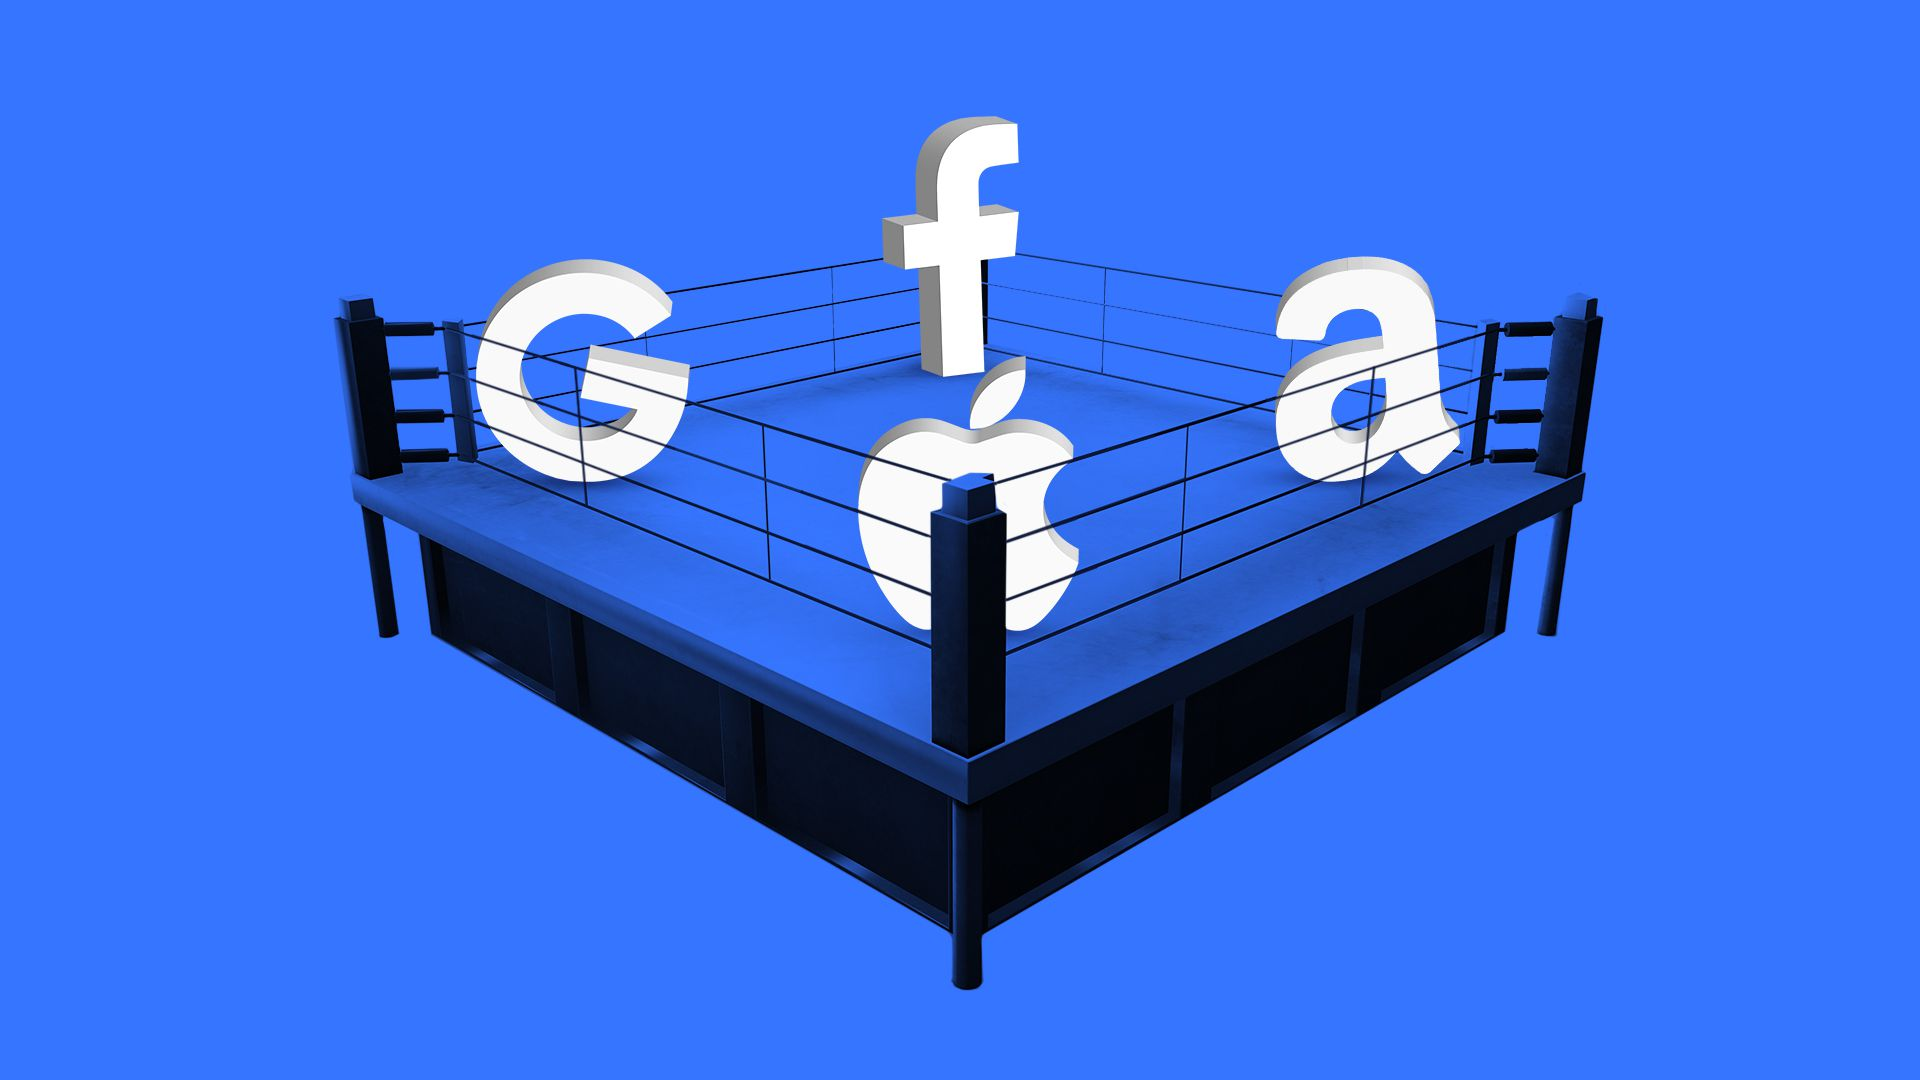 The logos for Facebook, Apple, Google and Amazon in a wrestling ring.